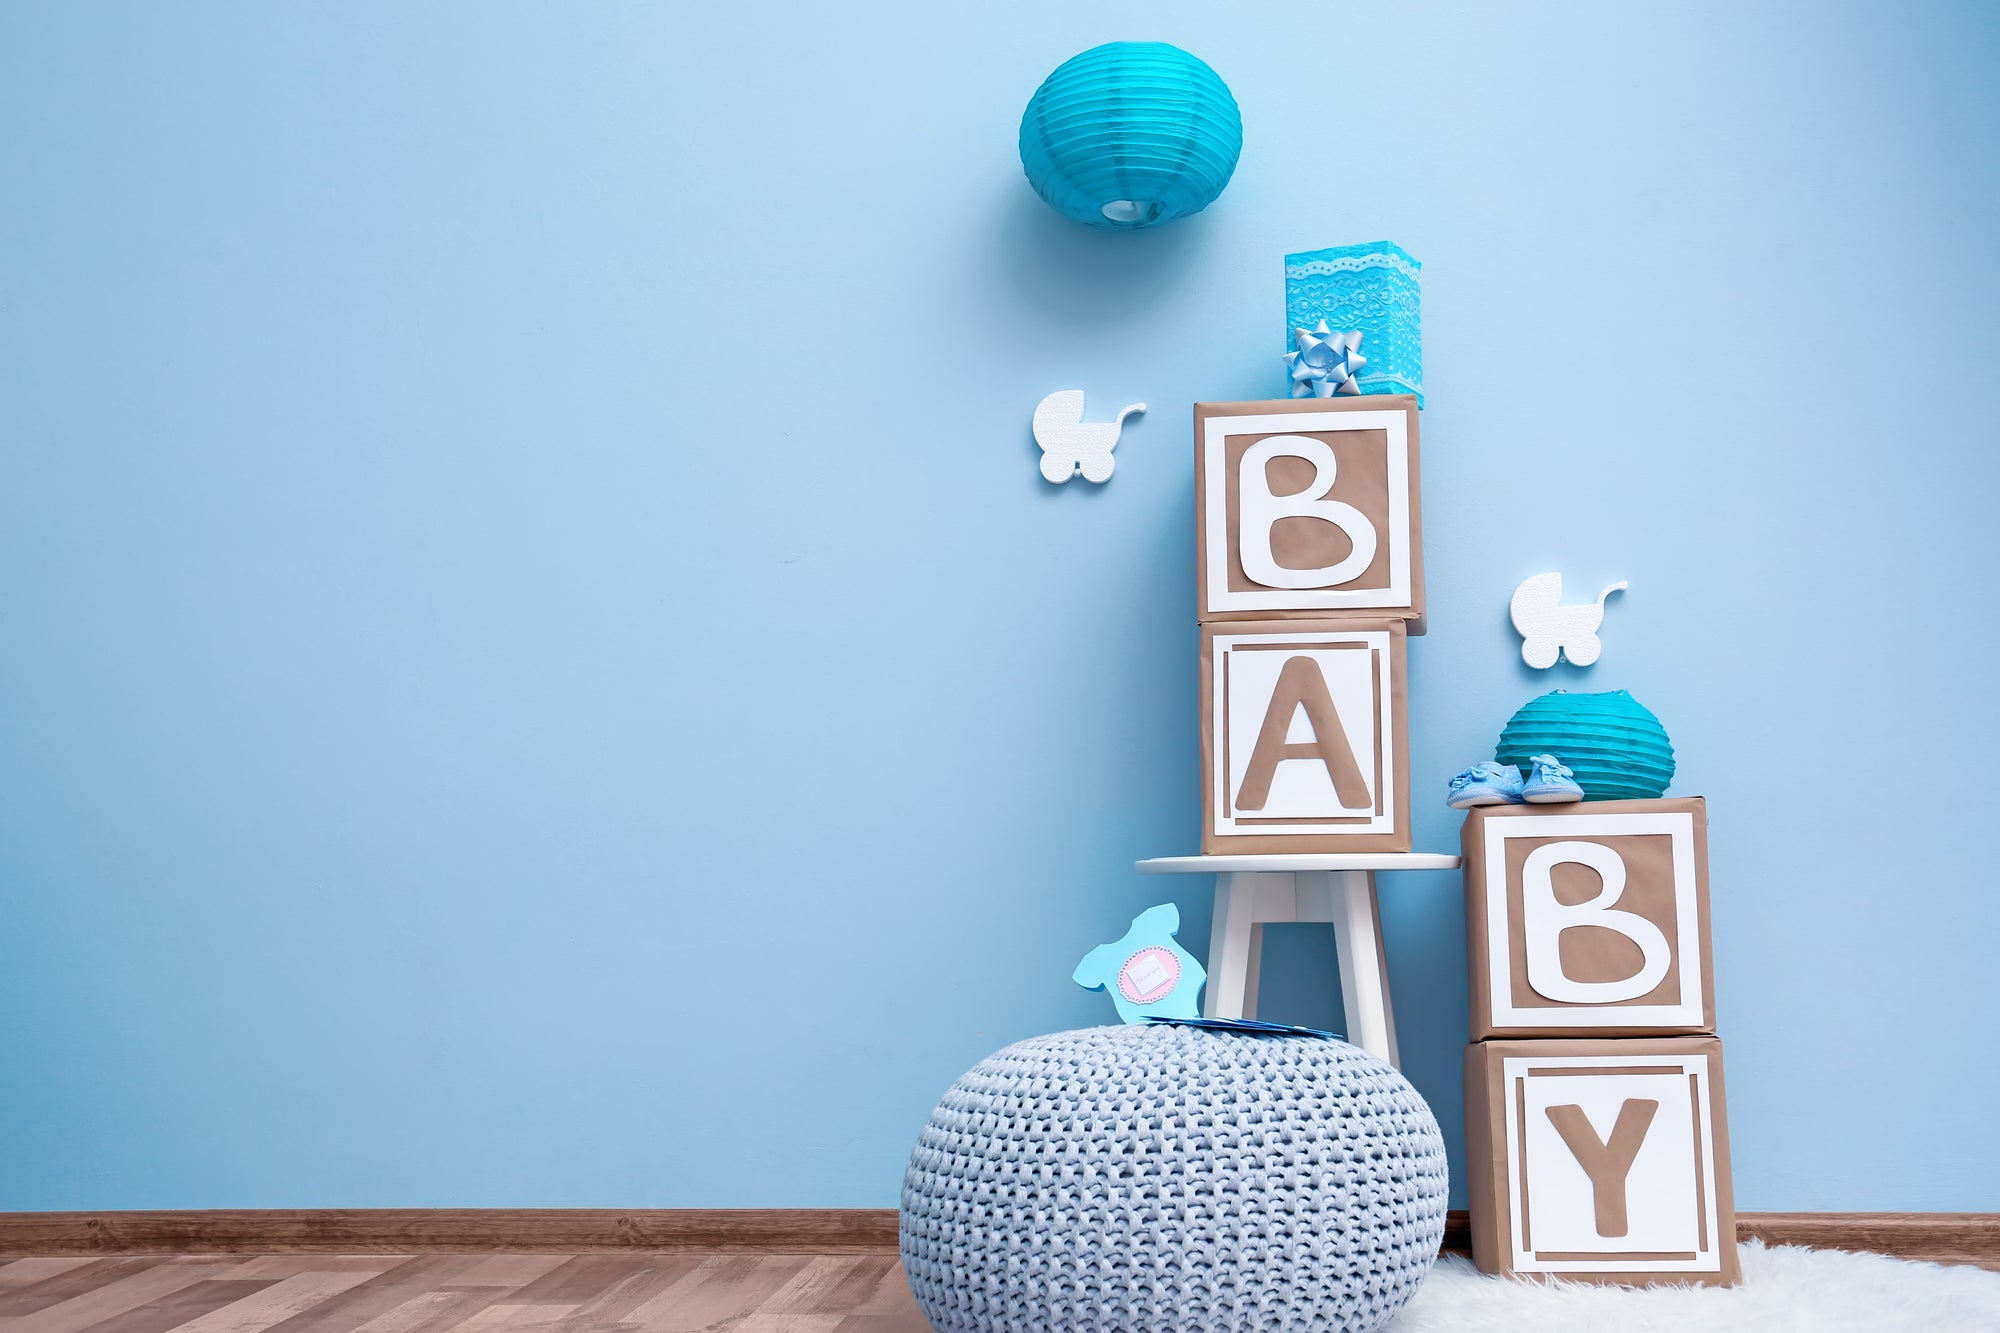 baby block spelling baby in a blue room